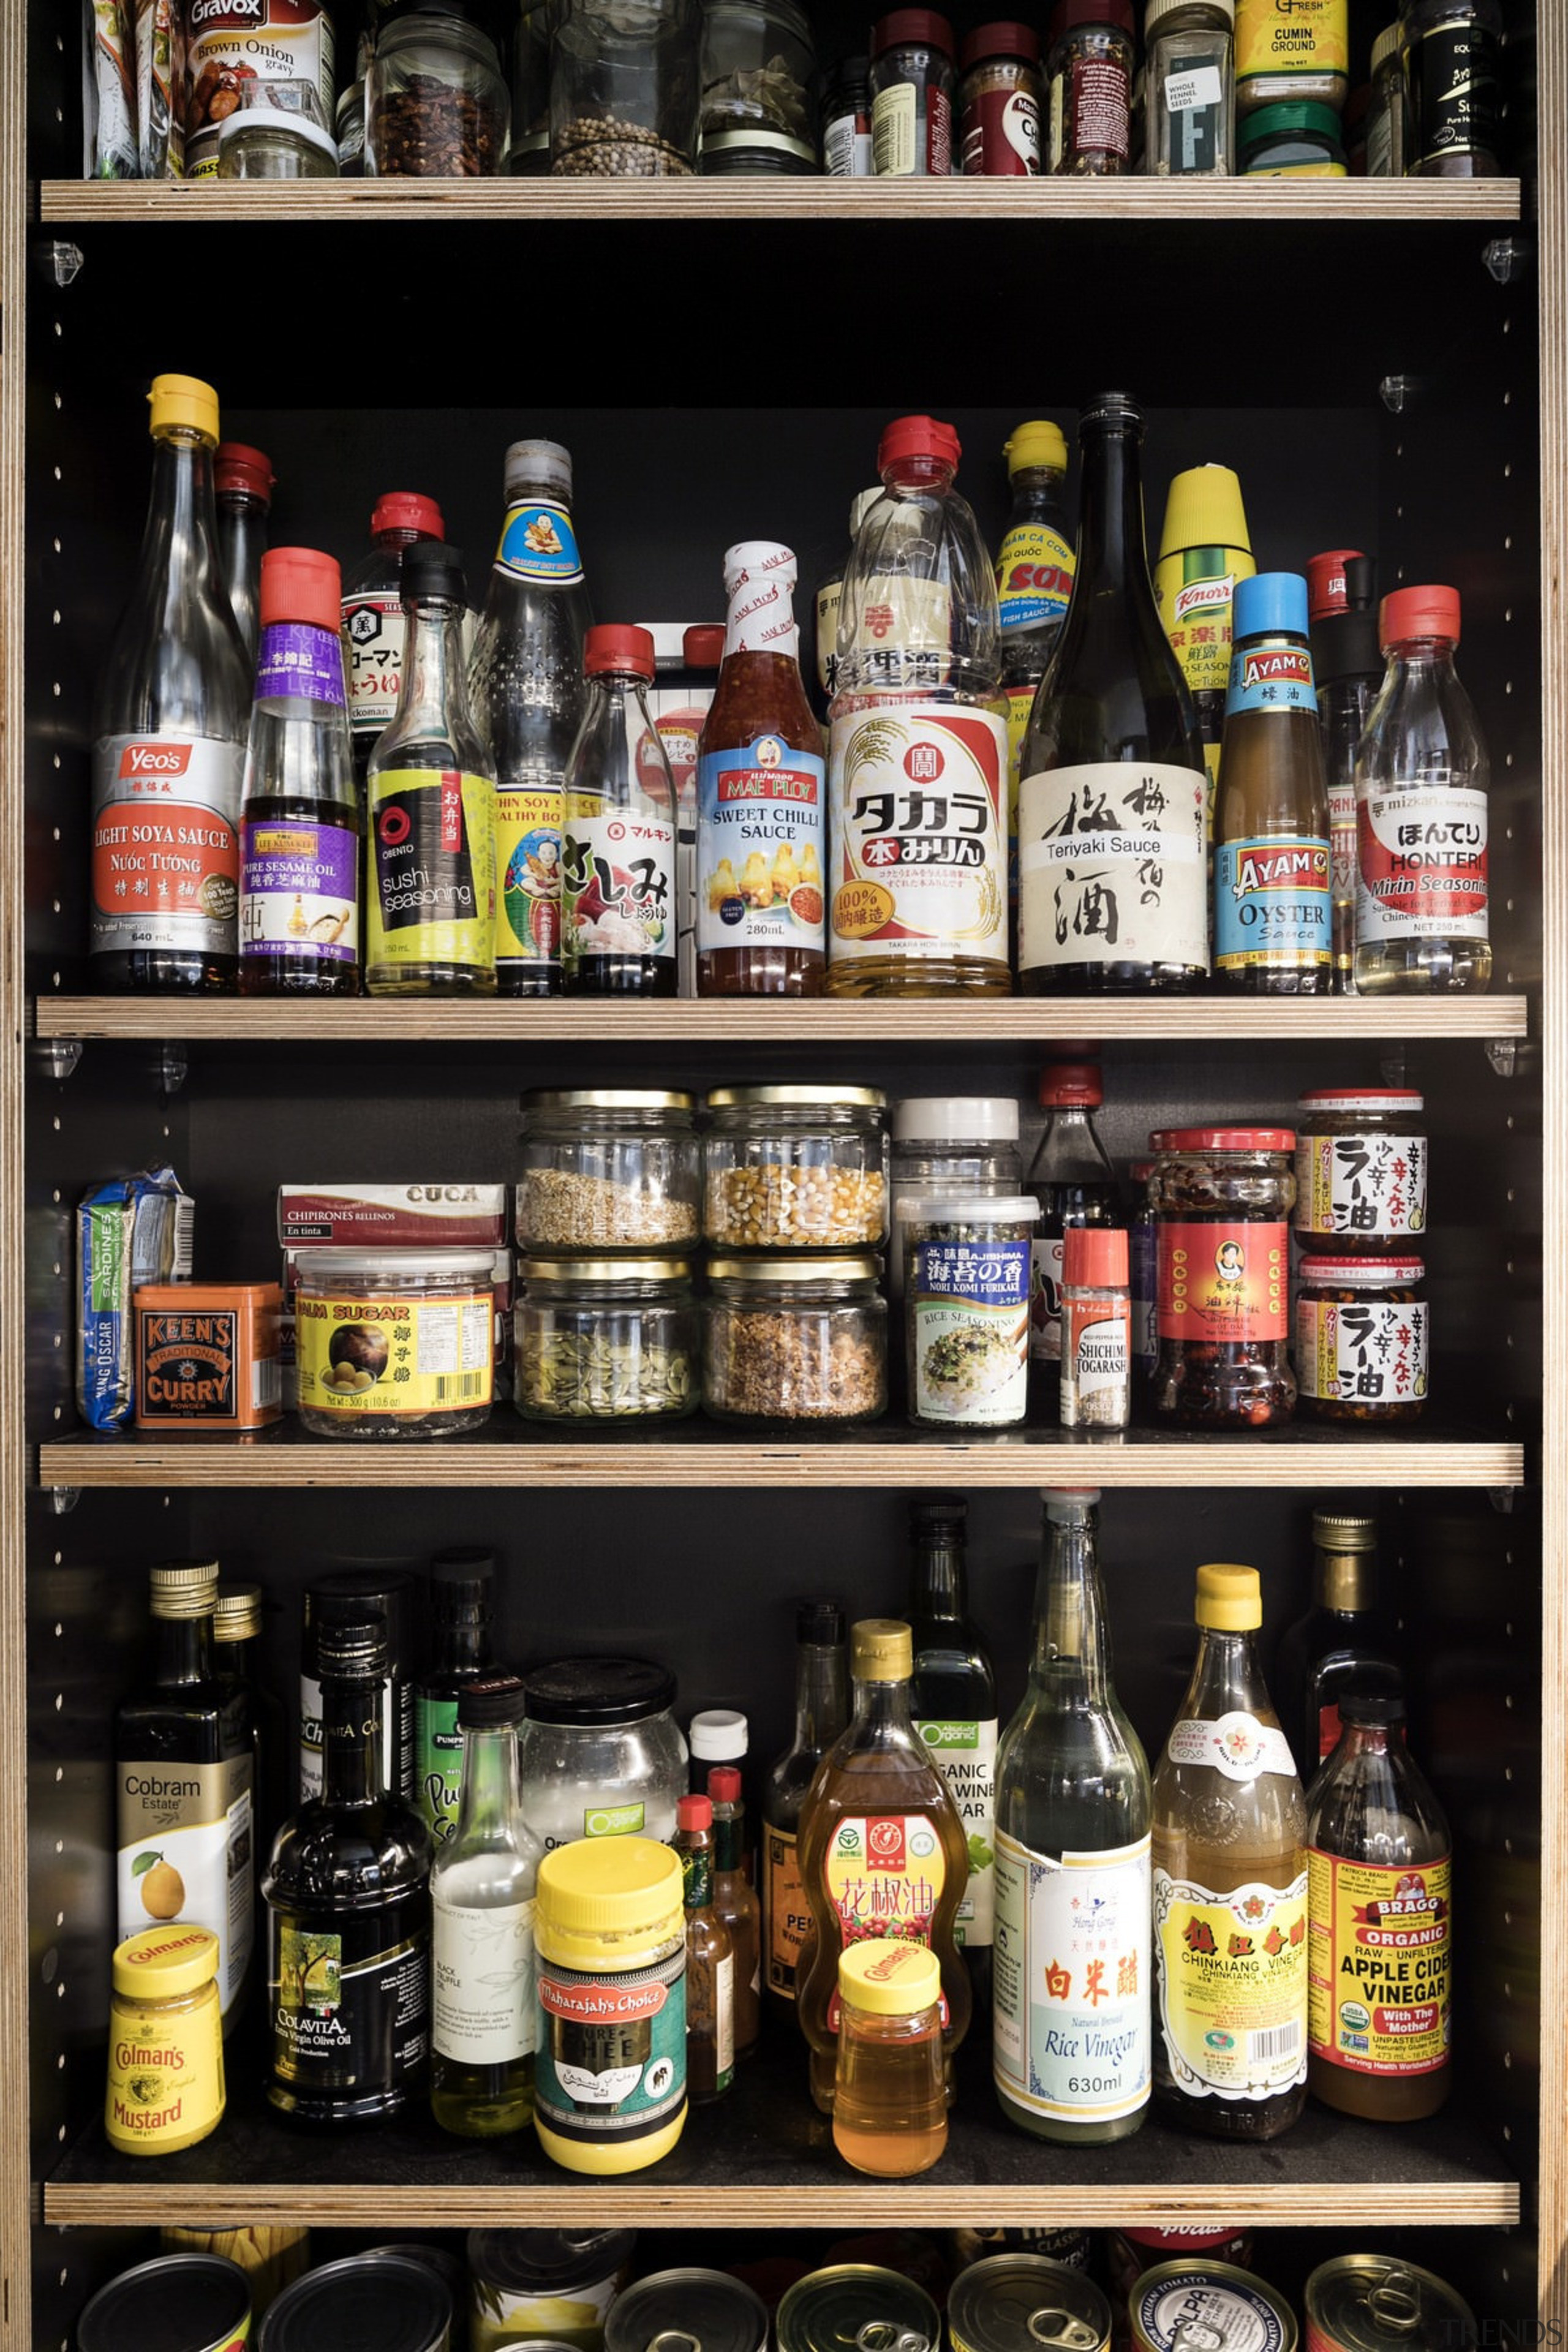 Easy access to condiments and spices - Easy alcohol, bottle, distilled beverage, drink, kitchen organizer, liquor store, product, shelf, black